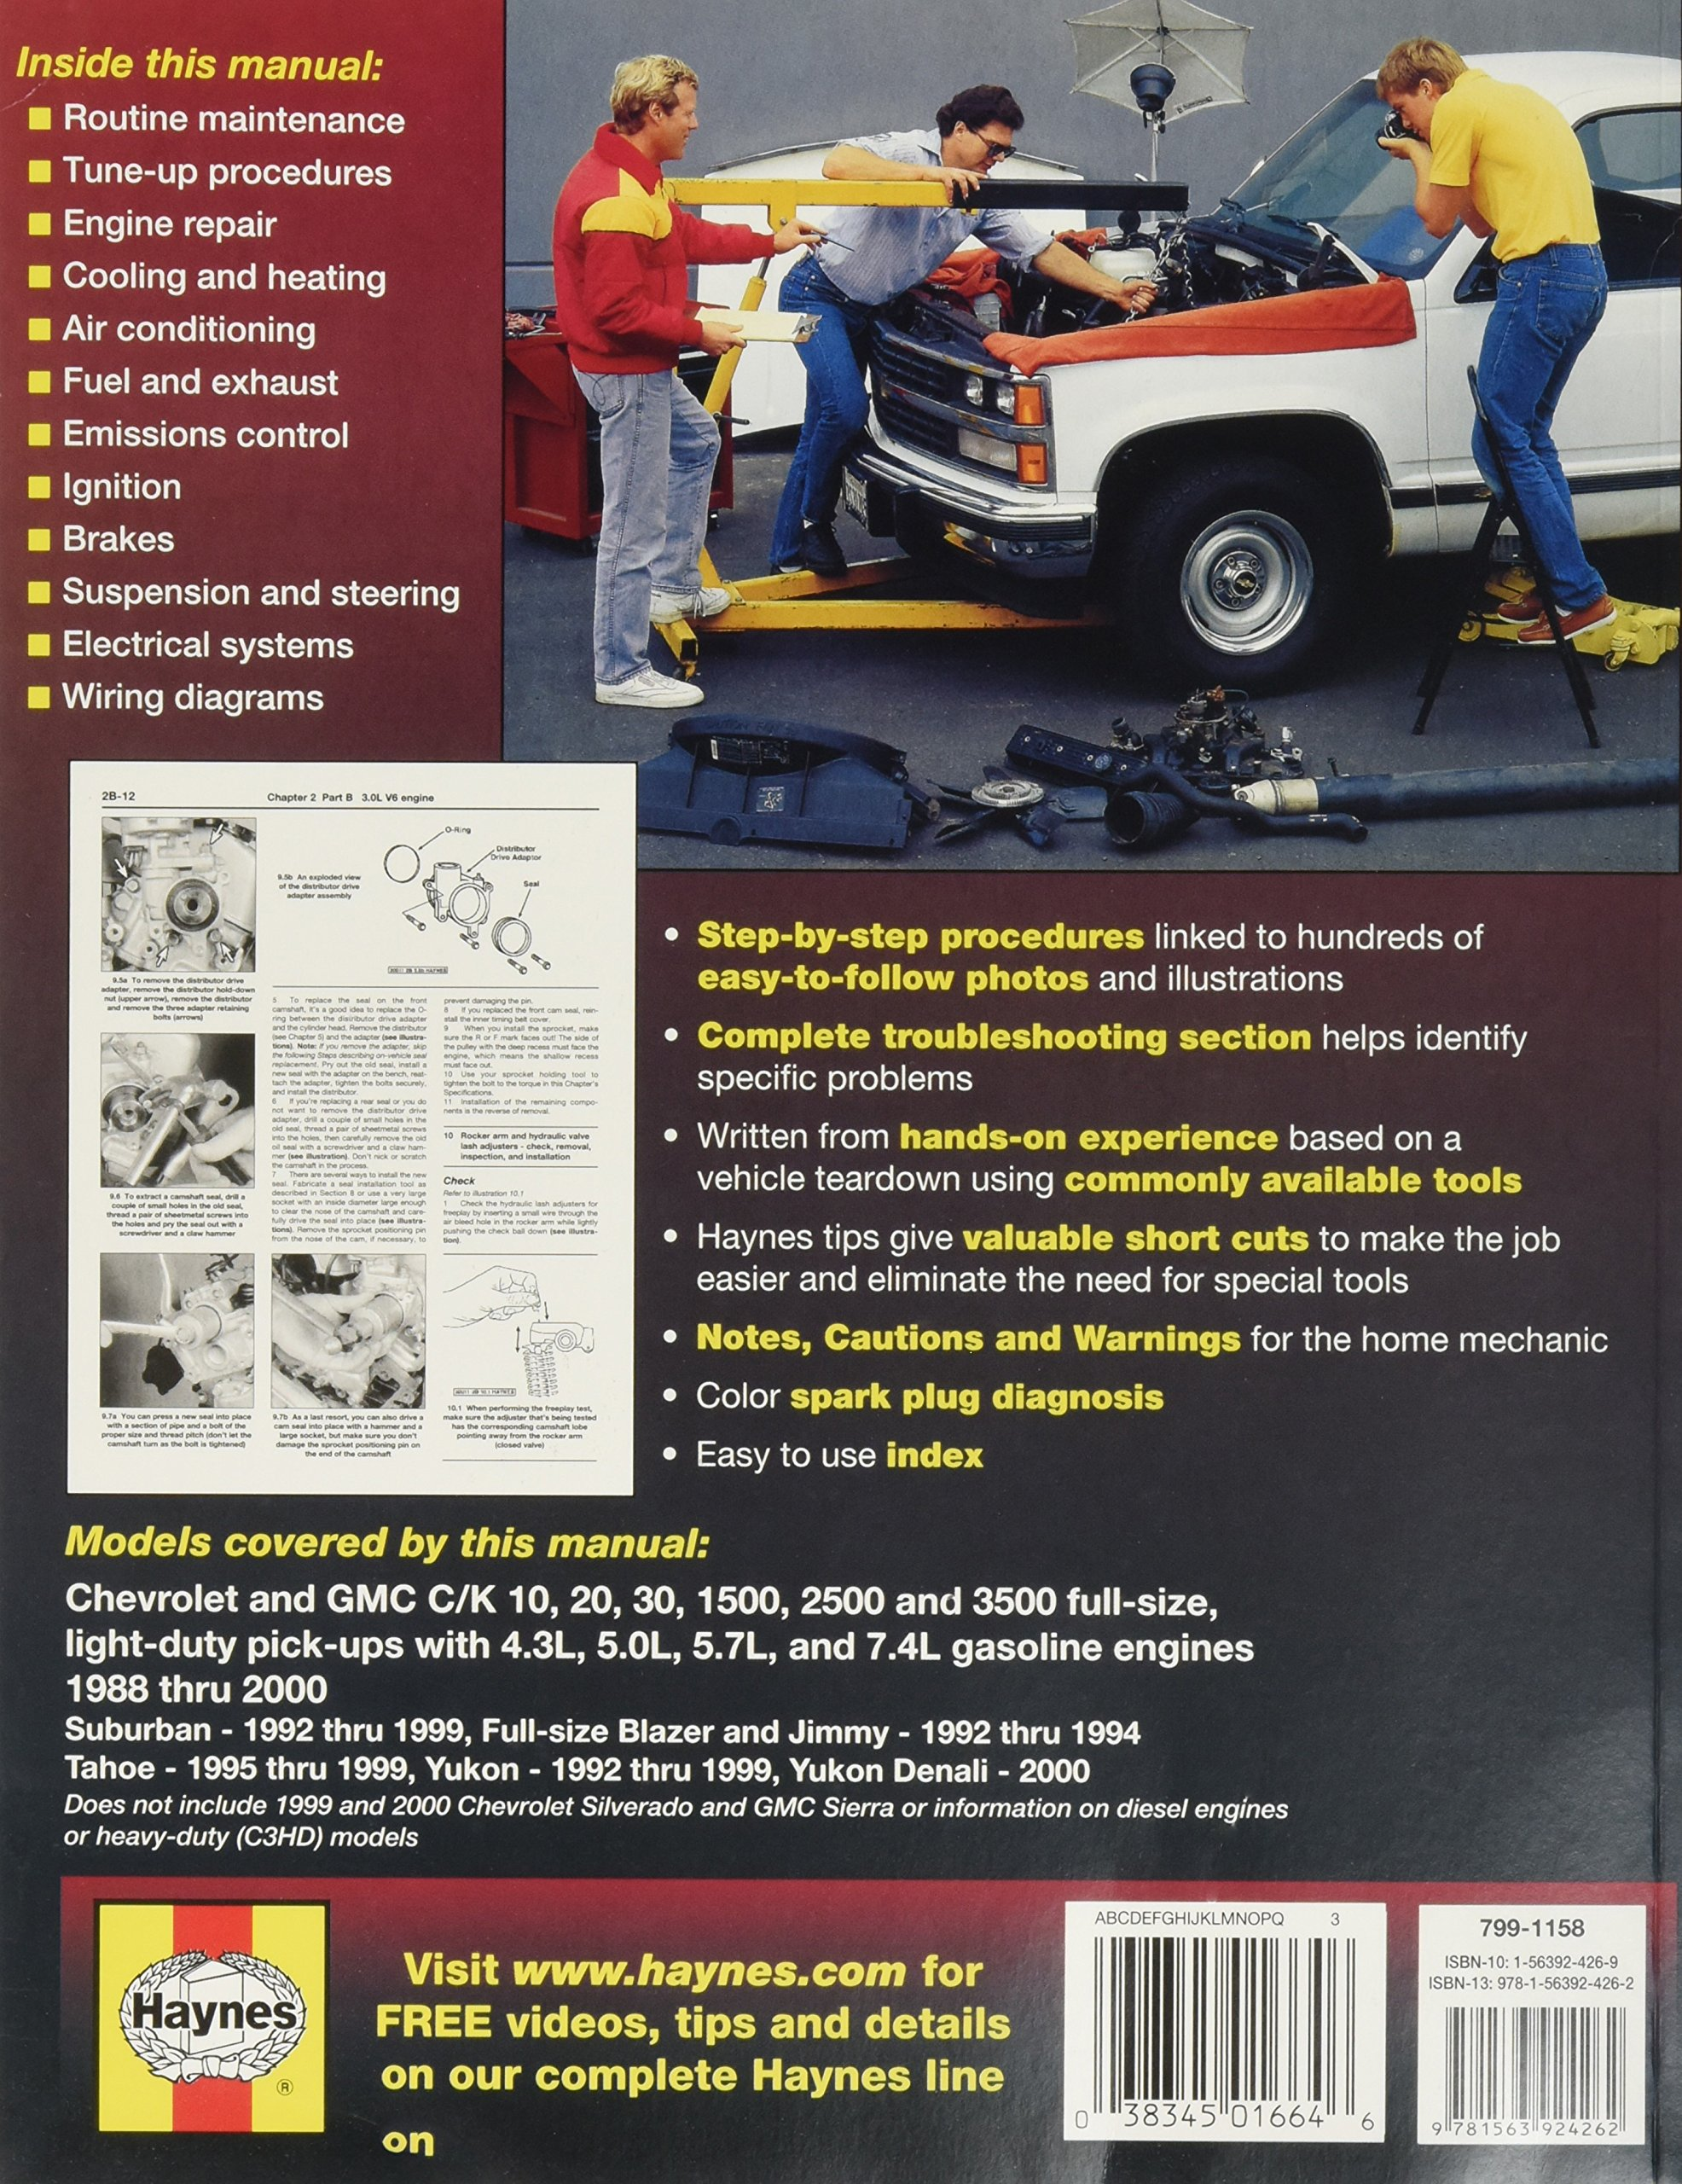 HAYNES REPAIR MANUAL for CHEVY PICK-UP NUMBER 24065 [Automotive]:  0038345016646: Amazon.com: Books